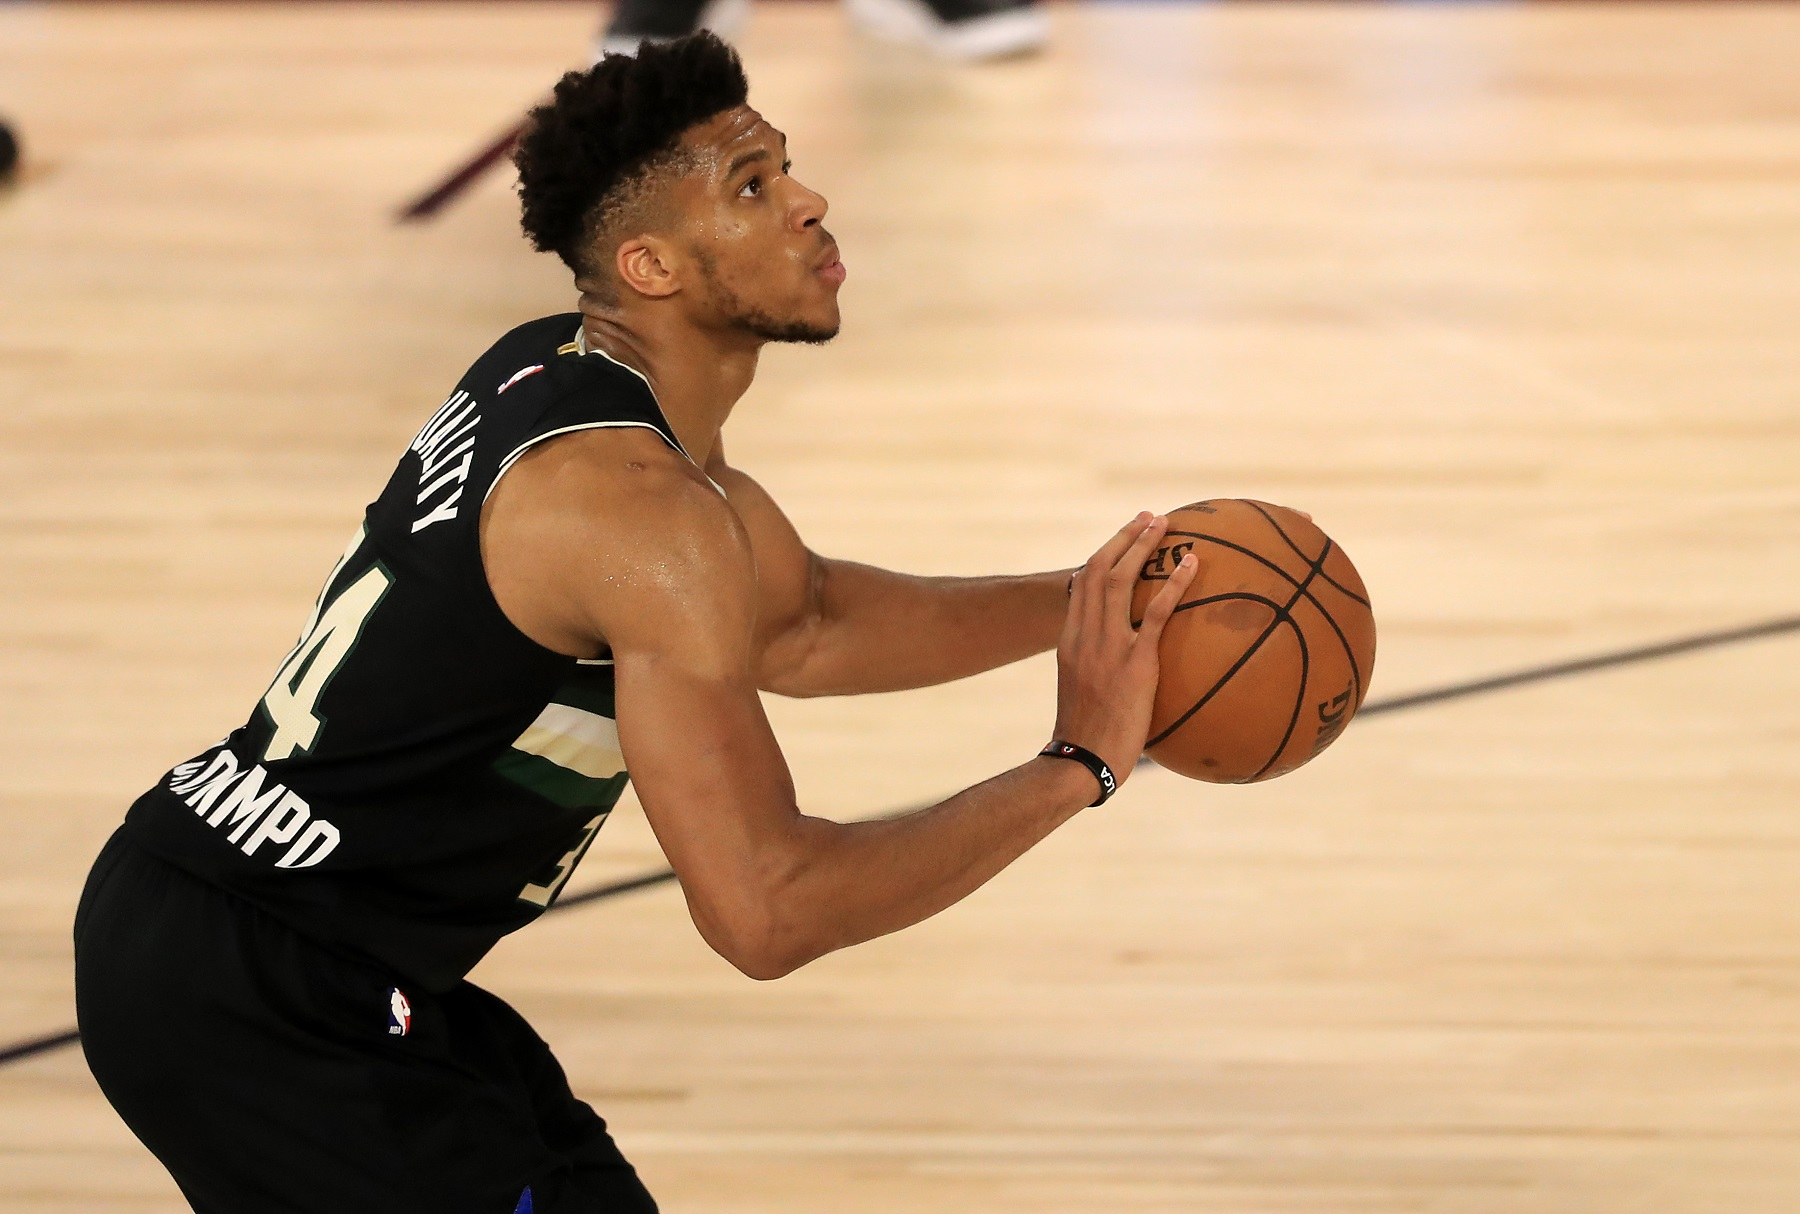 Milwaukee Feared a Different Disaster if Giannis Antetokounmpo Left the Bucks